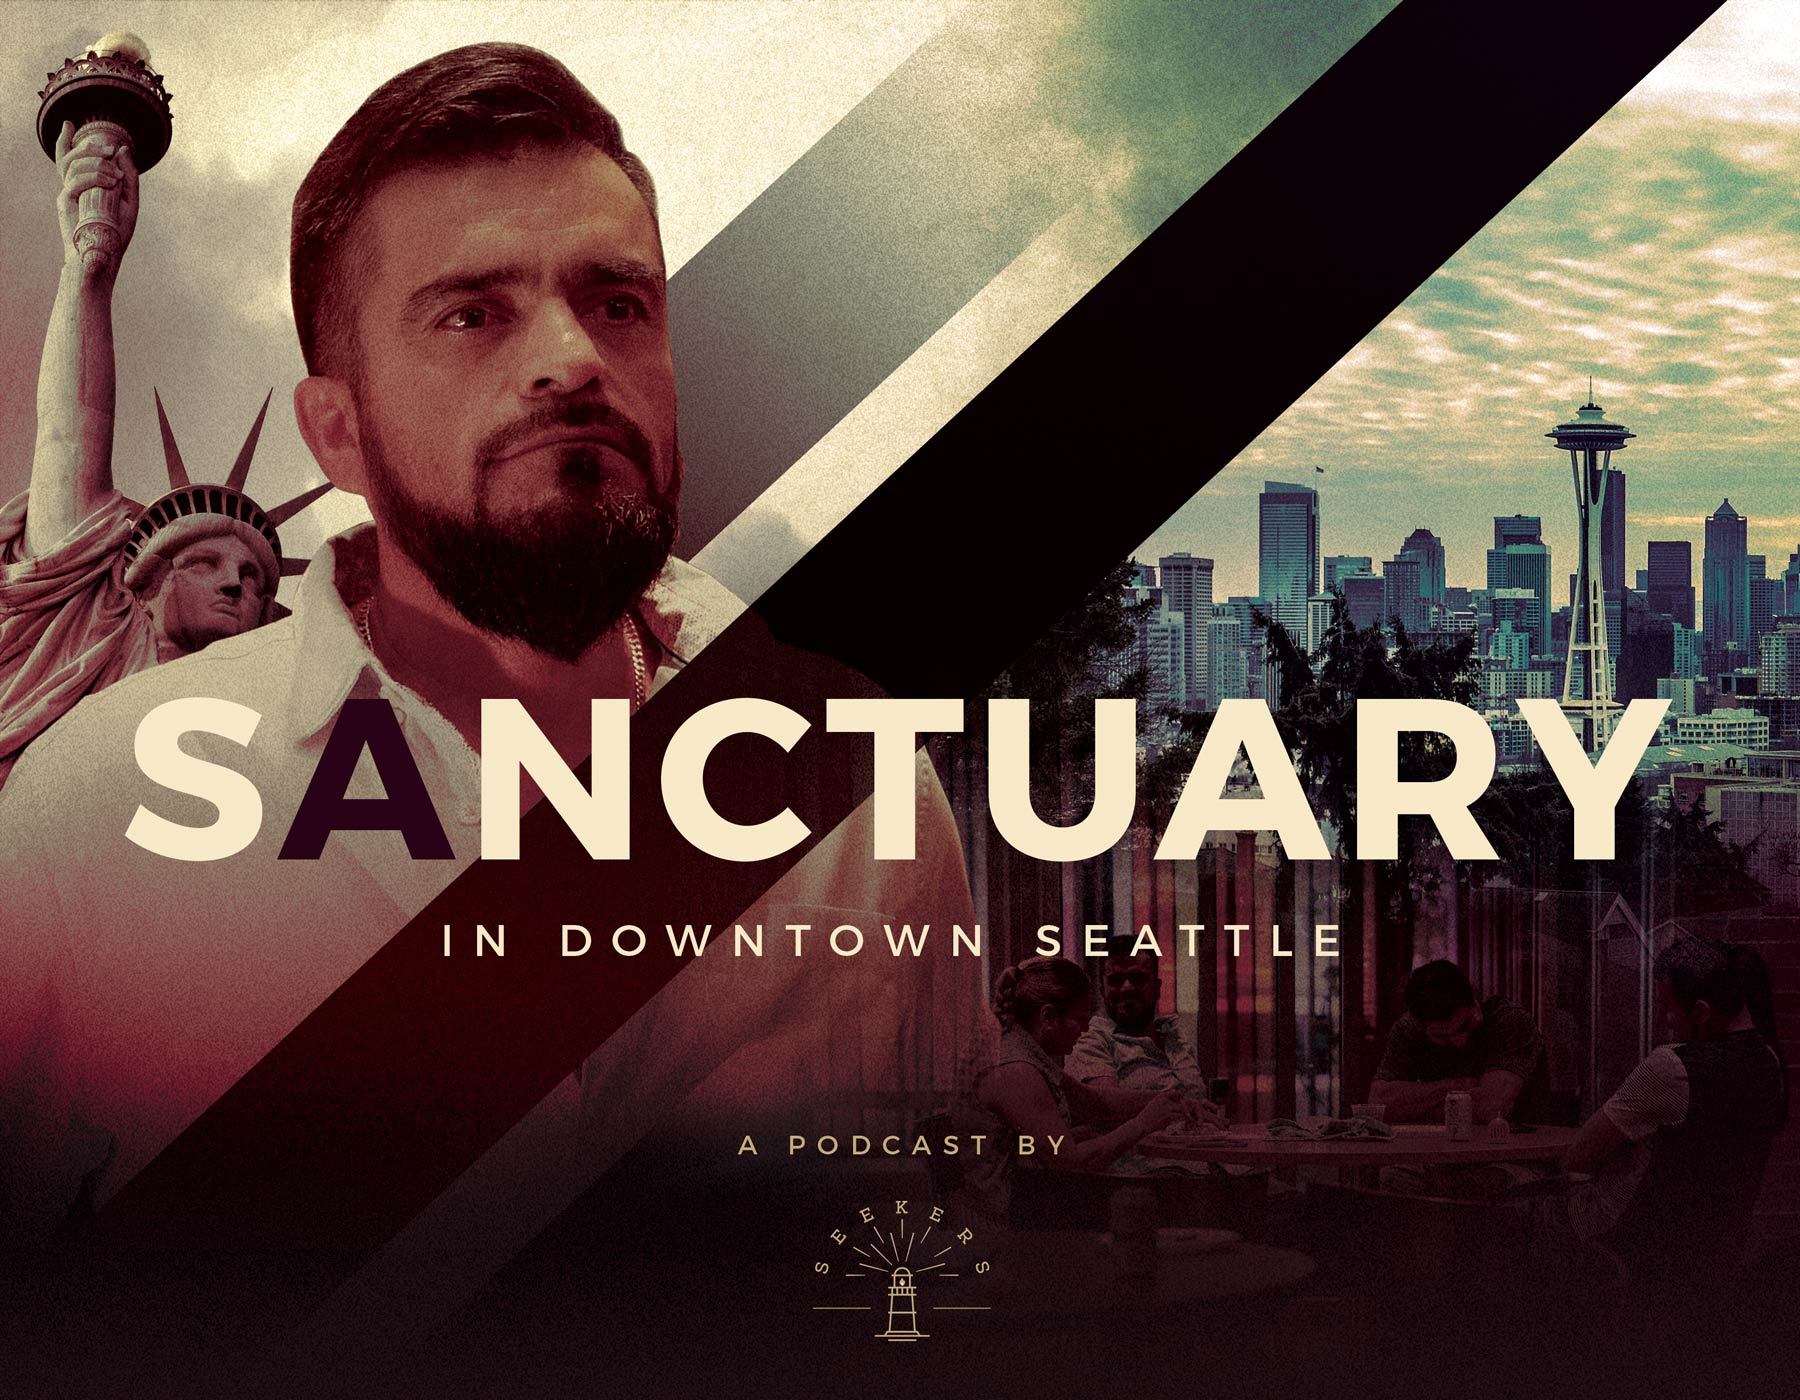 sanctuary-in-downtown-seattle-podcast.jpg